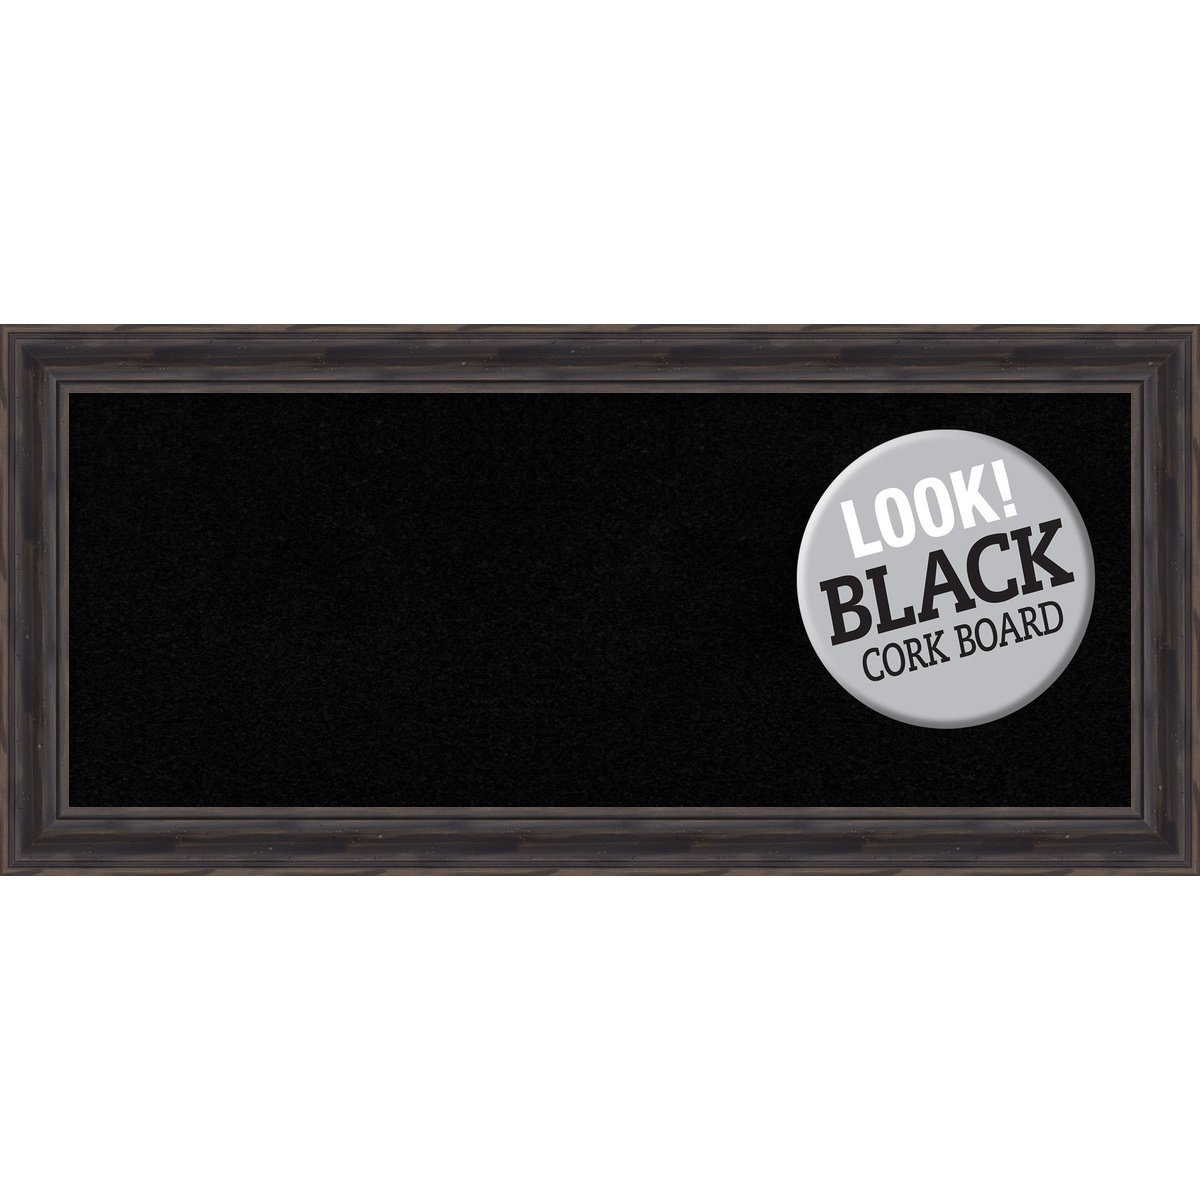 Amanti Art Outer Size 21 x 15 Framed Black Cork Board Small, Rustic Pine DSW3980078